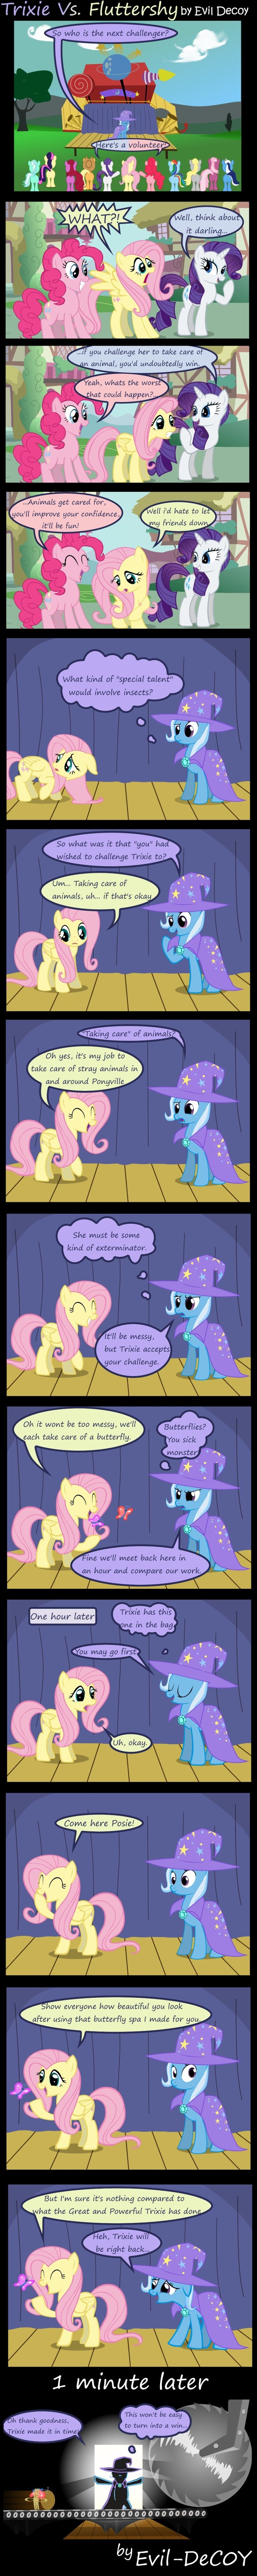 trixie vs fluttershy. last comment wins!.. let's see what you got trixie